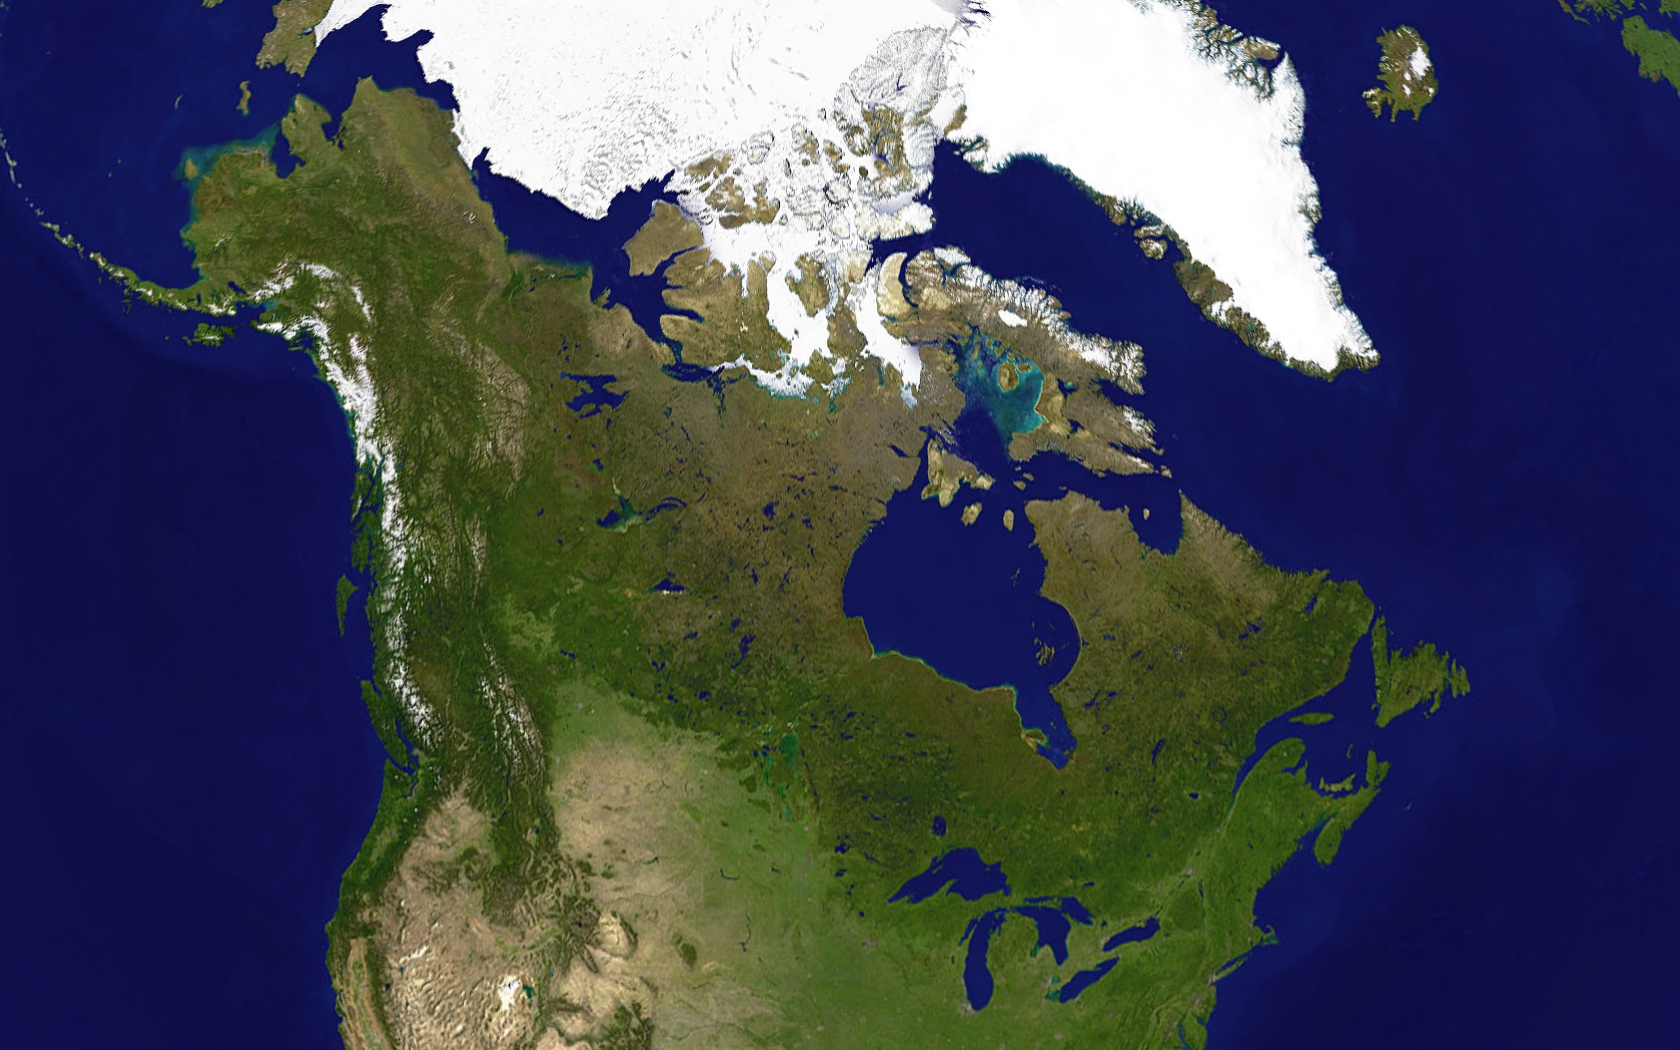 A satellite composite image containing all of Canada and part of the United States. Boreal forests prevail on the rocky Canadian Shield, while ice and ...